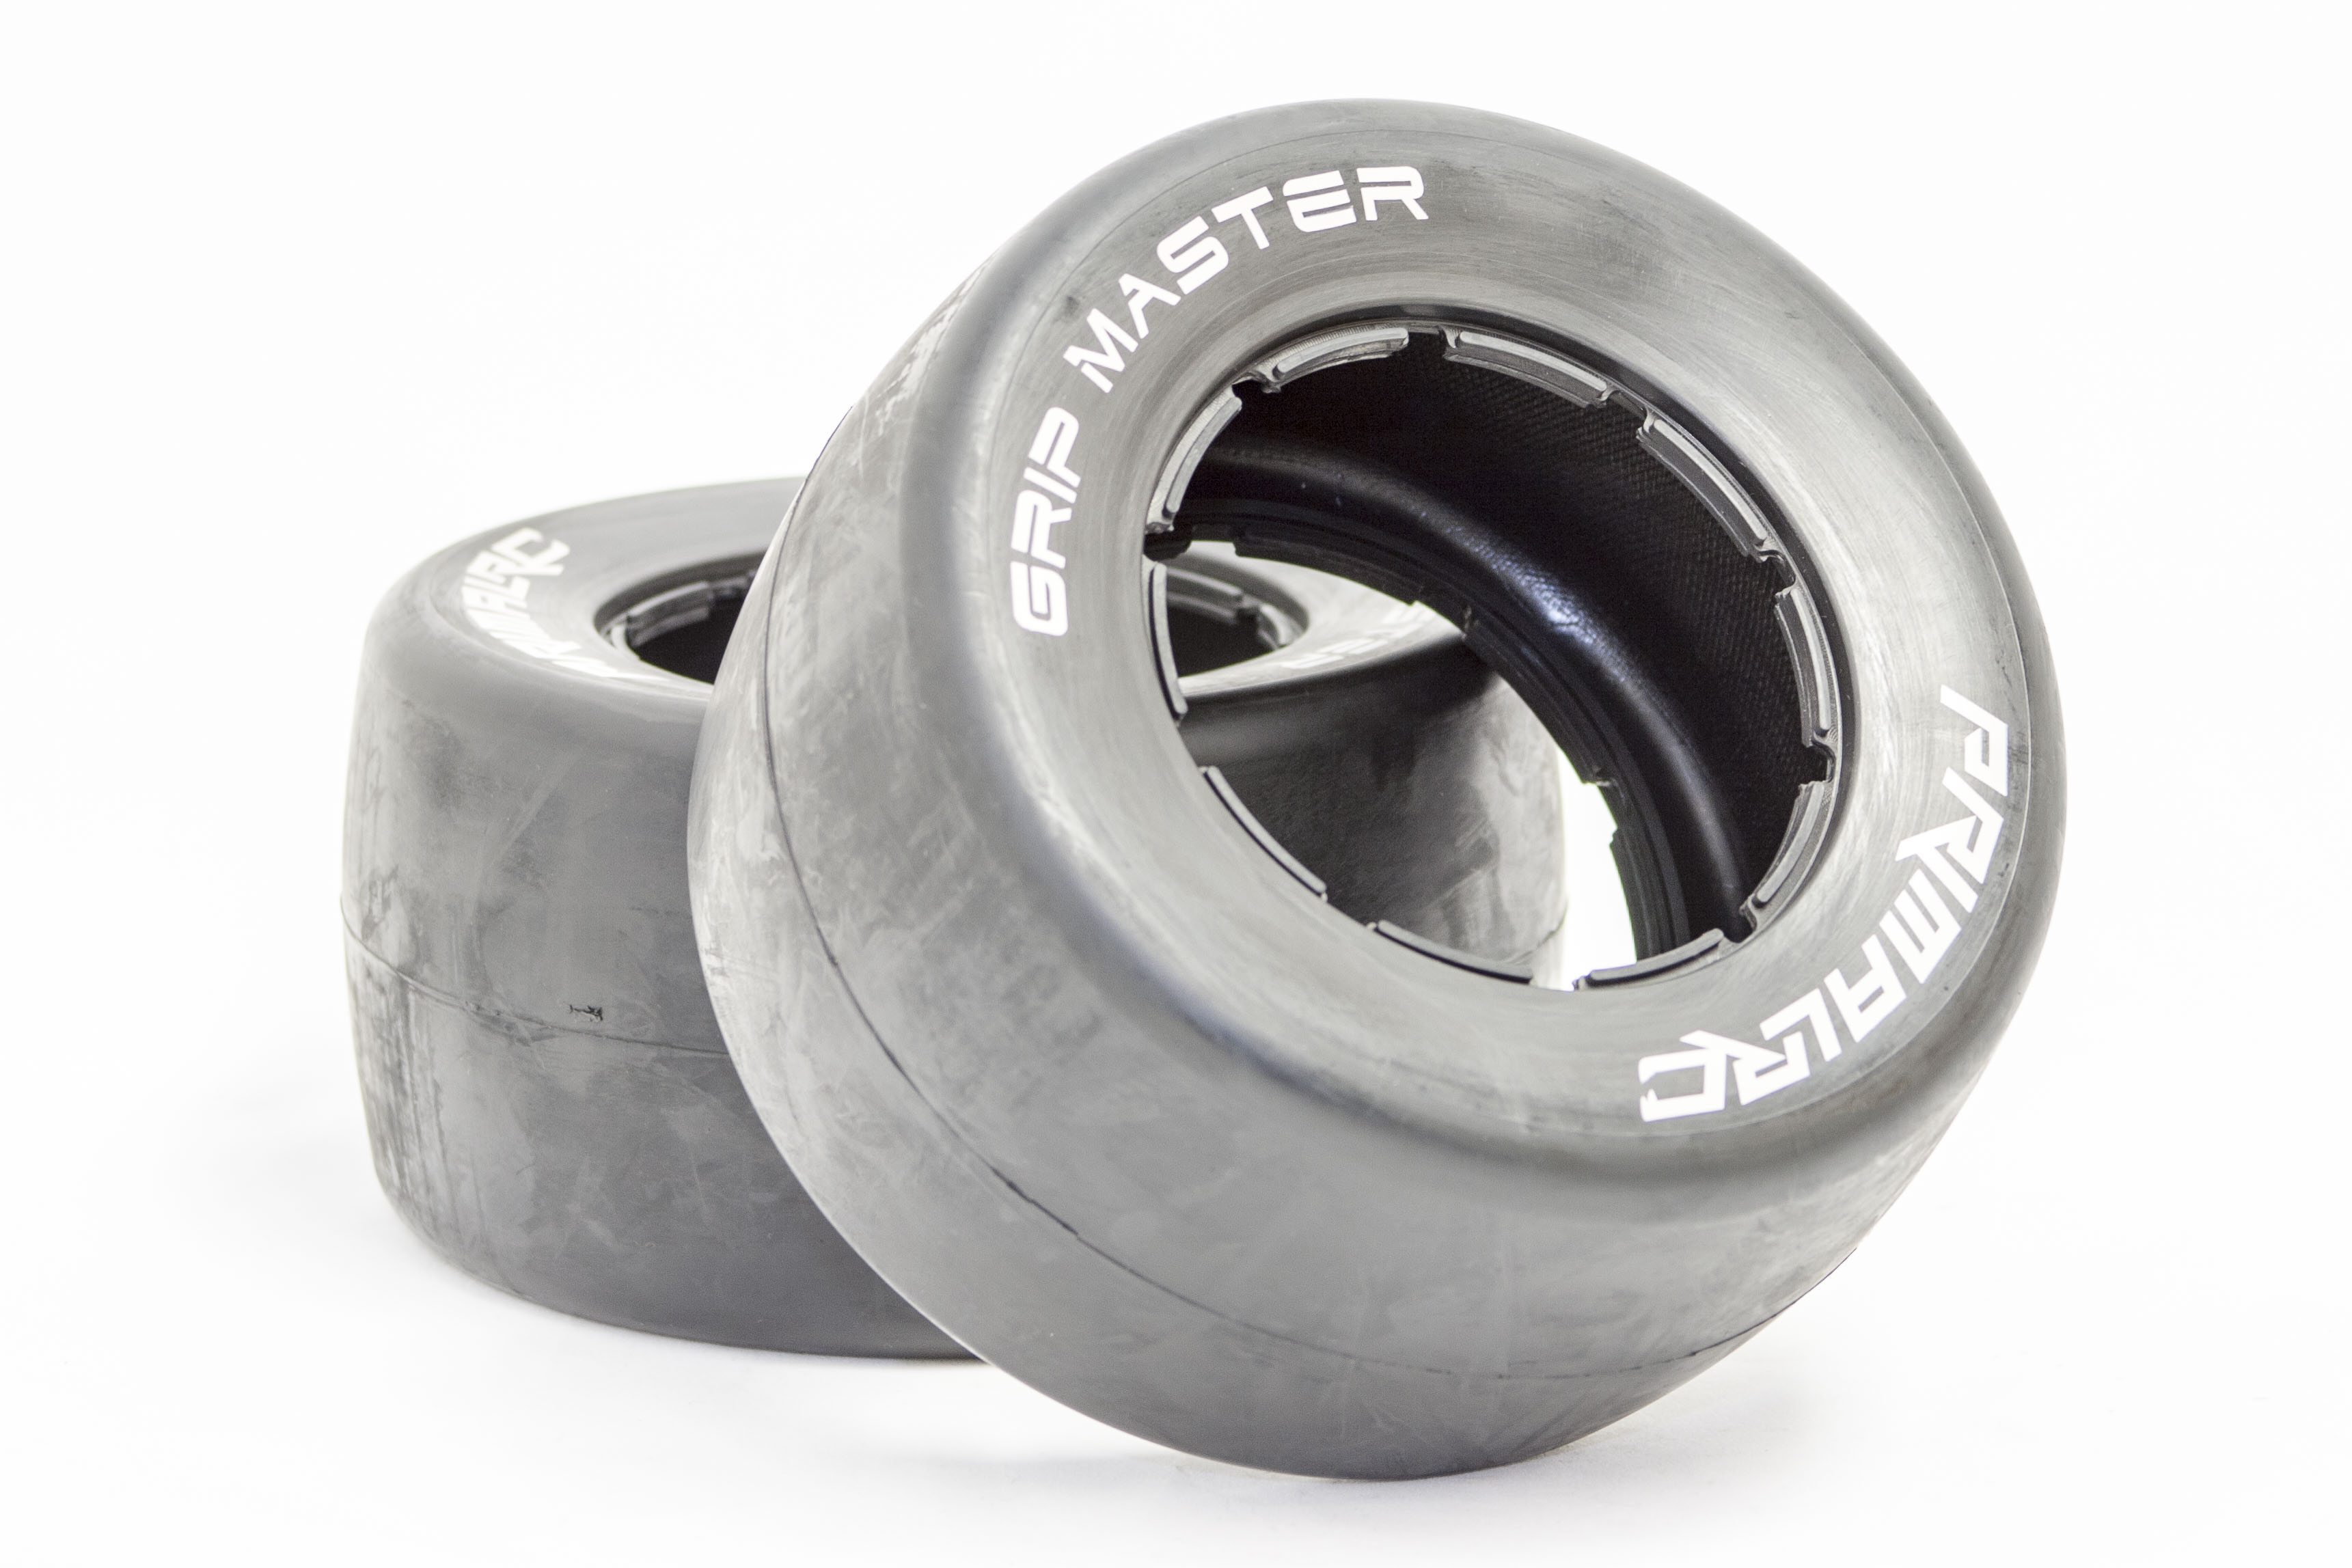 Primal RC QuickSilver Rear Racing Slick Belted Tires (set of 2)